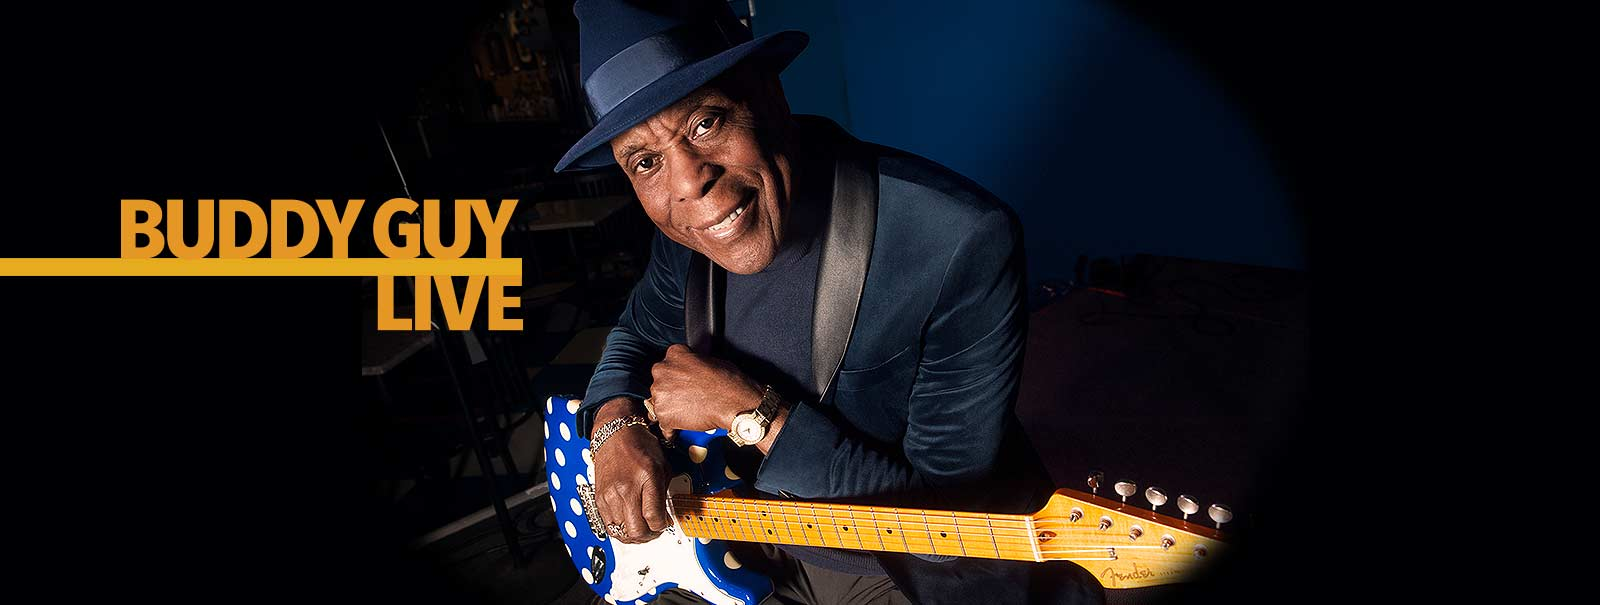 More Info - Buddy Guy